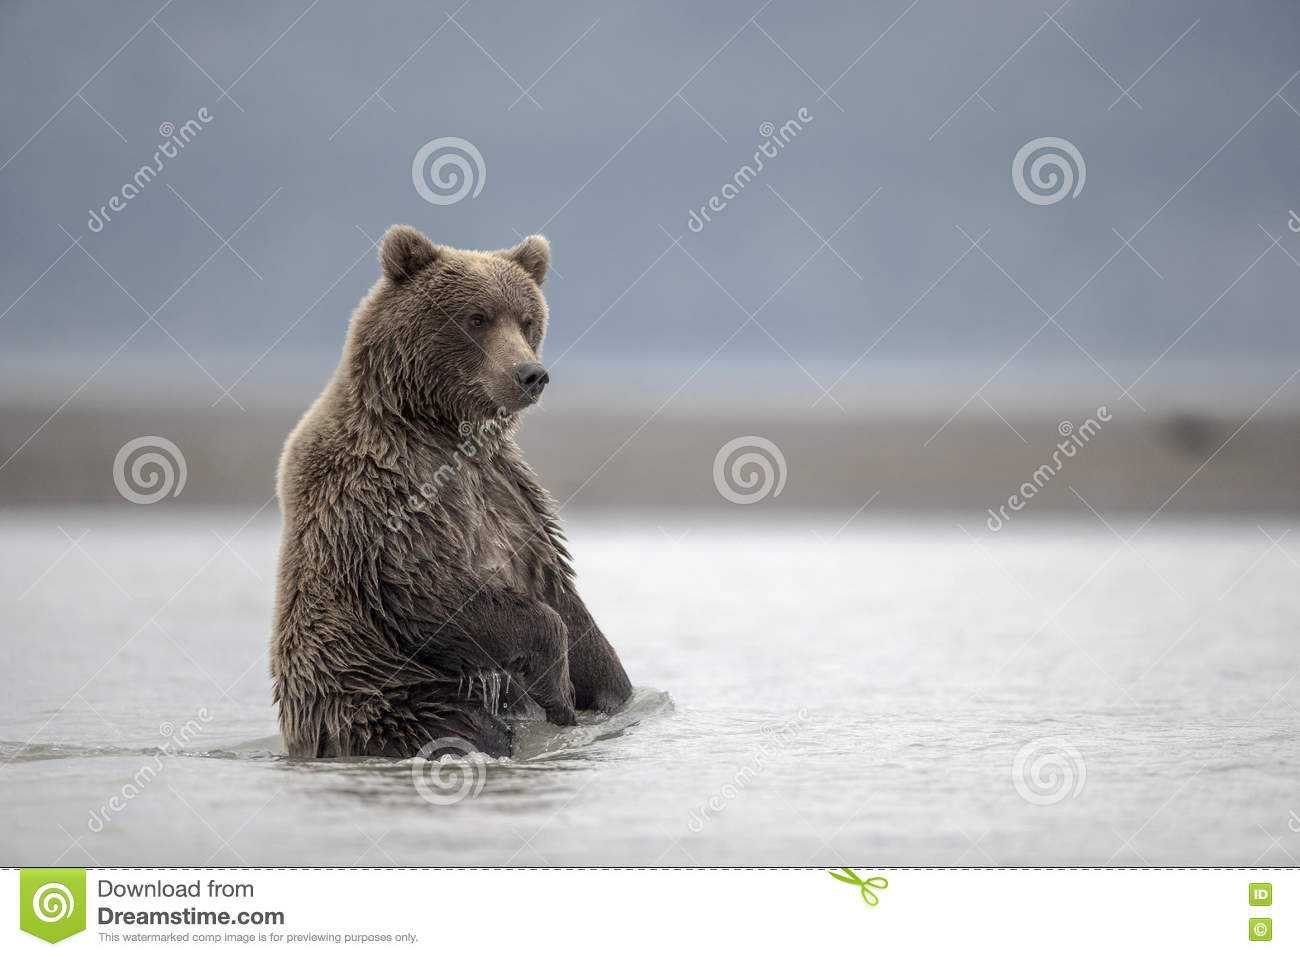 Grizzly cub waiting for food.